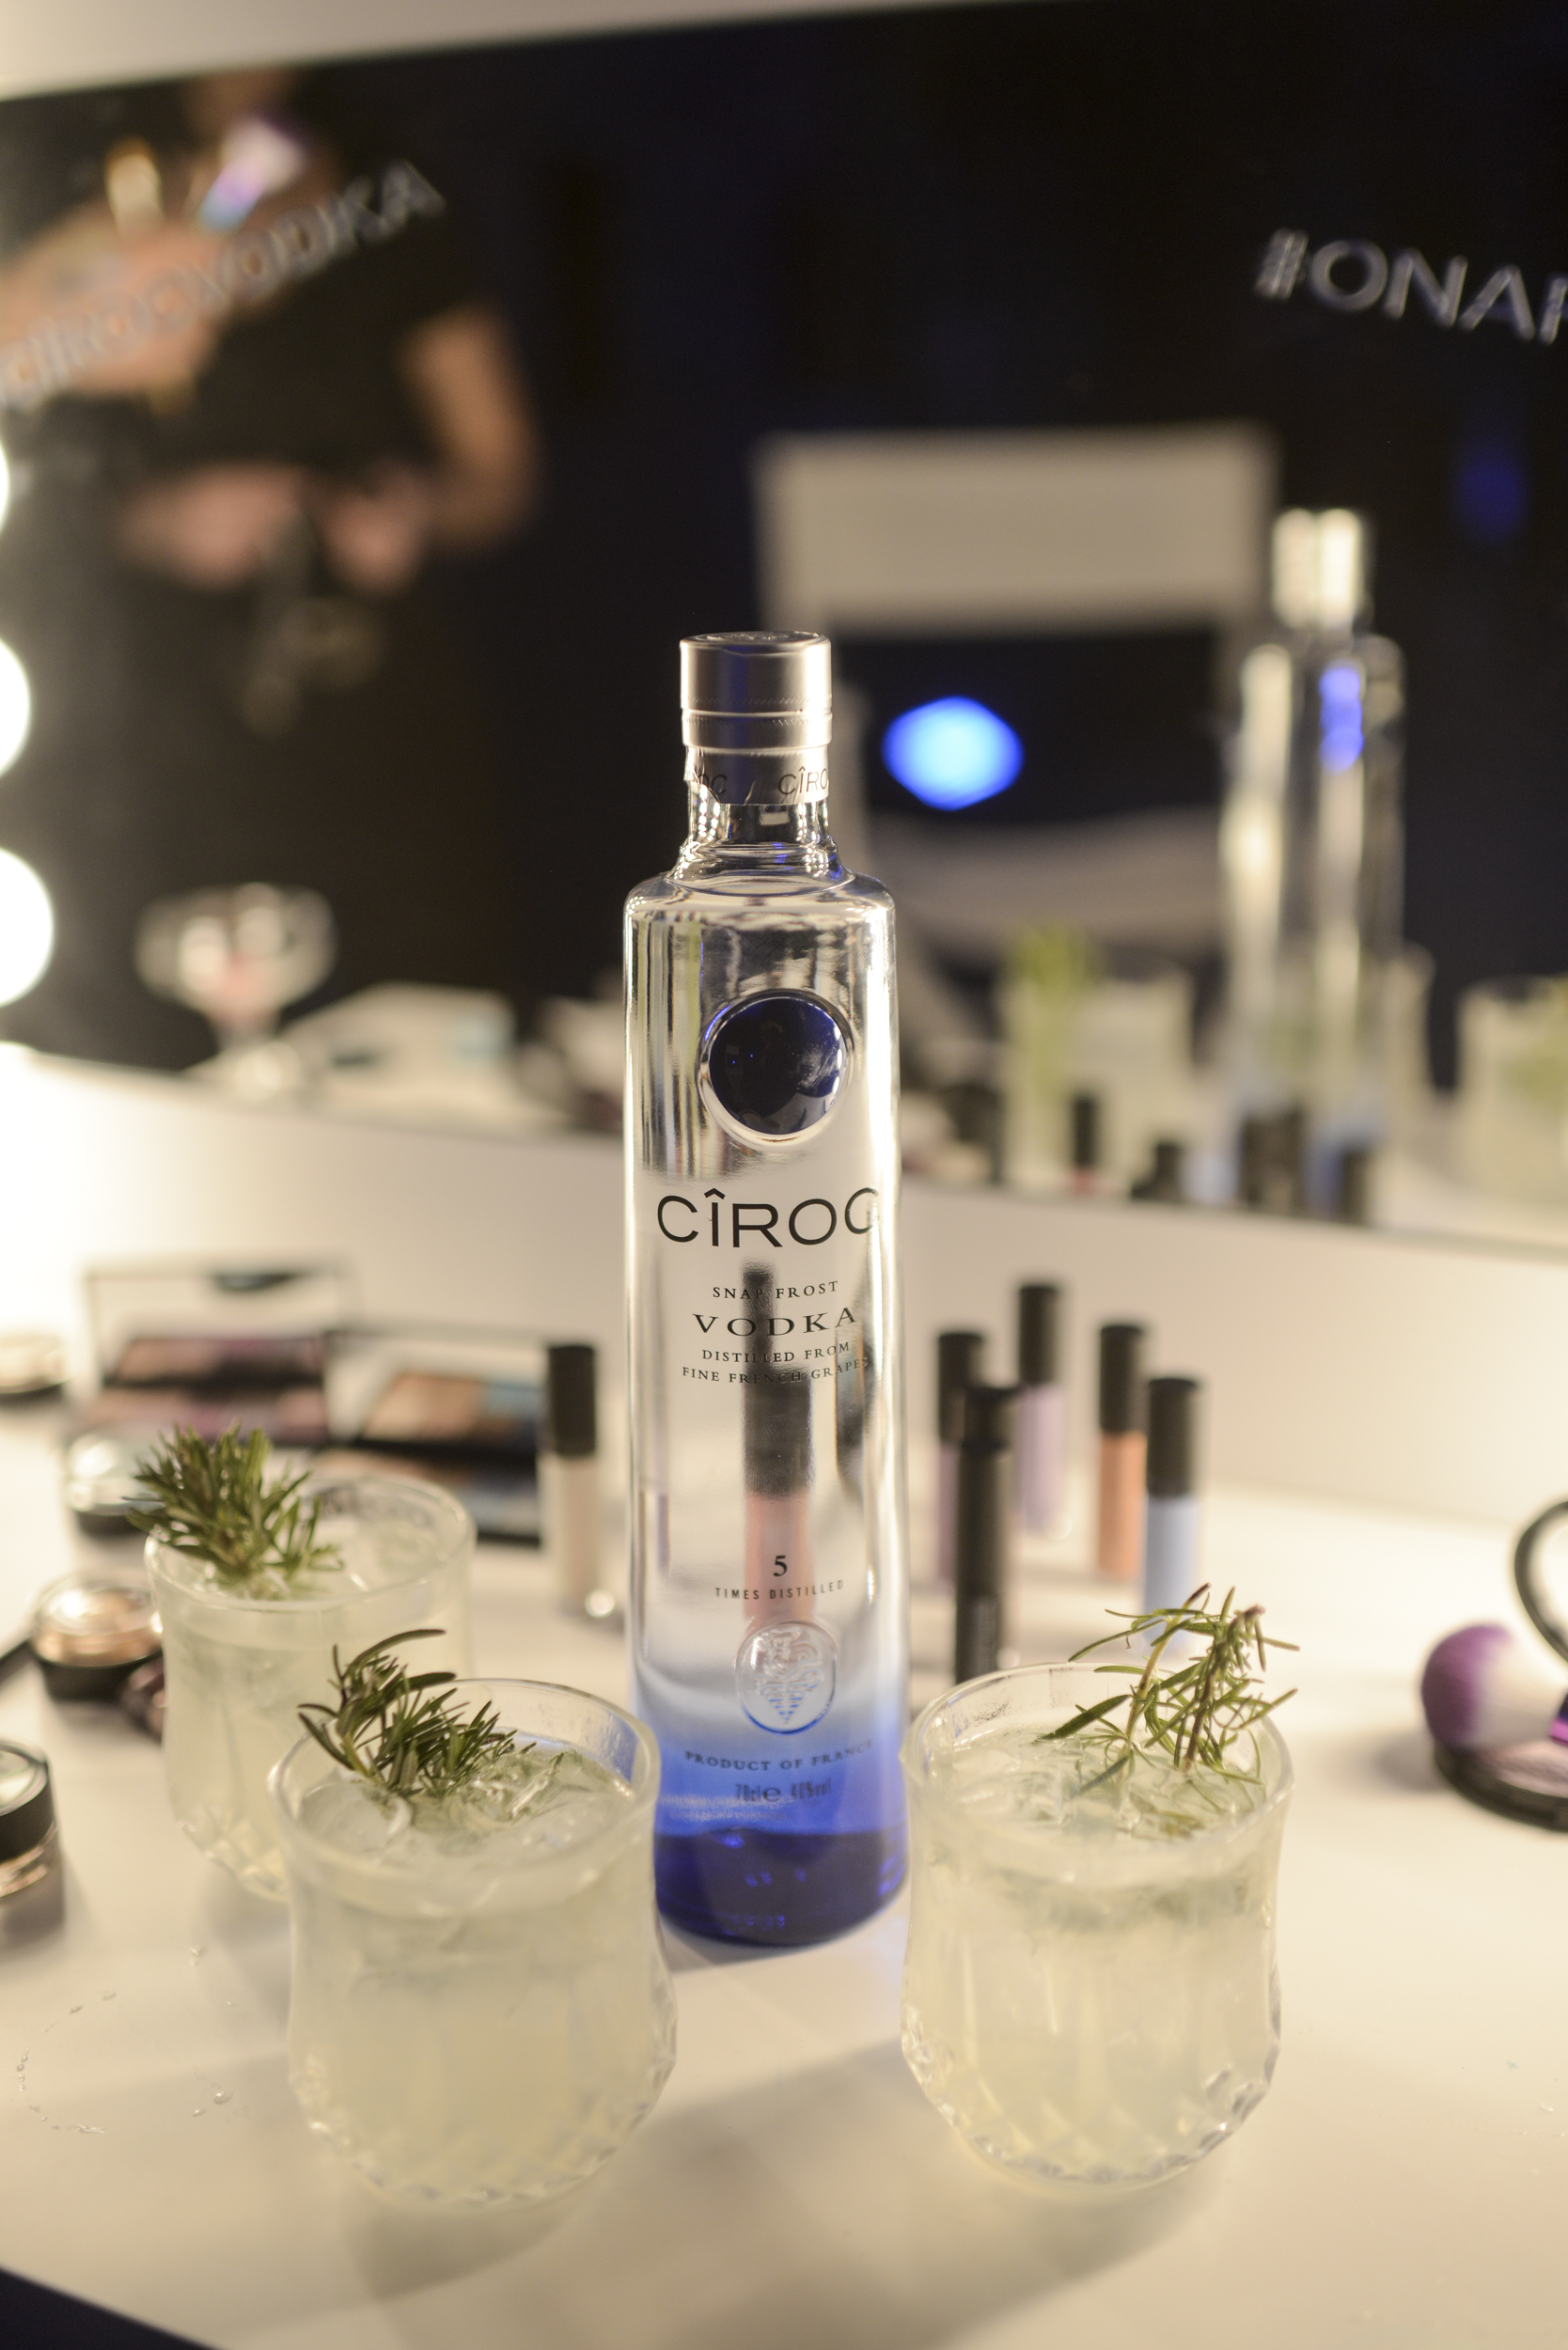 Ciroc X Stelios Koudounaris The Ciroc Crystal cocktail